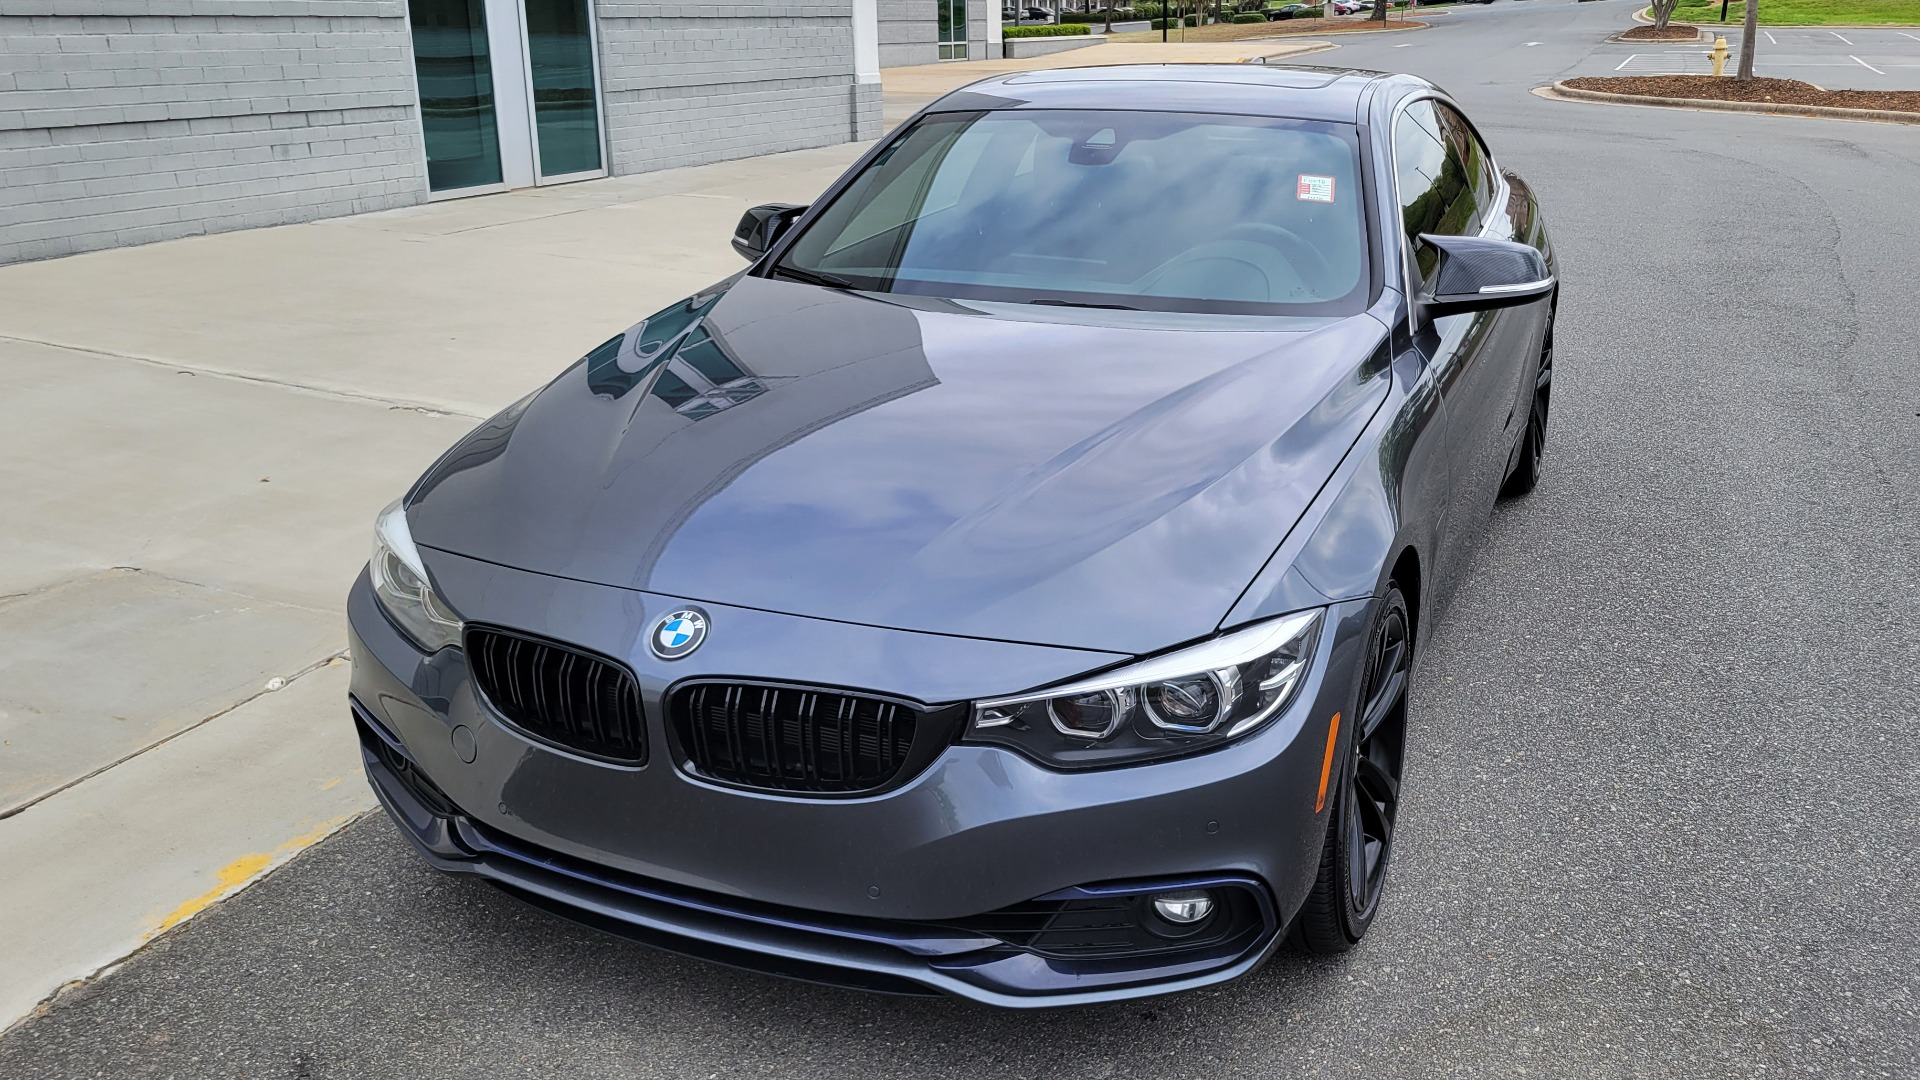 Used 2019 BMW 4 SERIES 430I COUPE 2.0L / RWD / DRVR ASST / CONV PKG / SUNROOF / REARVIEW for sale $32,295 at Formula Imports in Charlotte NC 28227 1